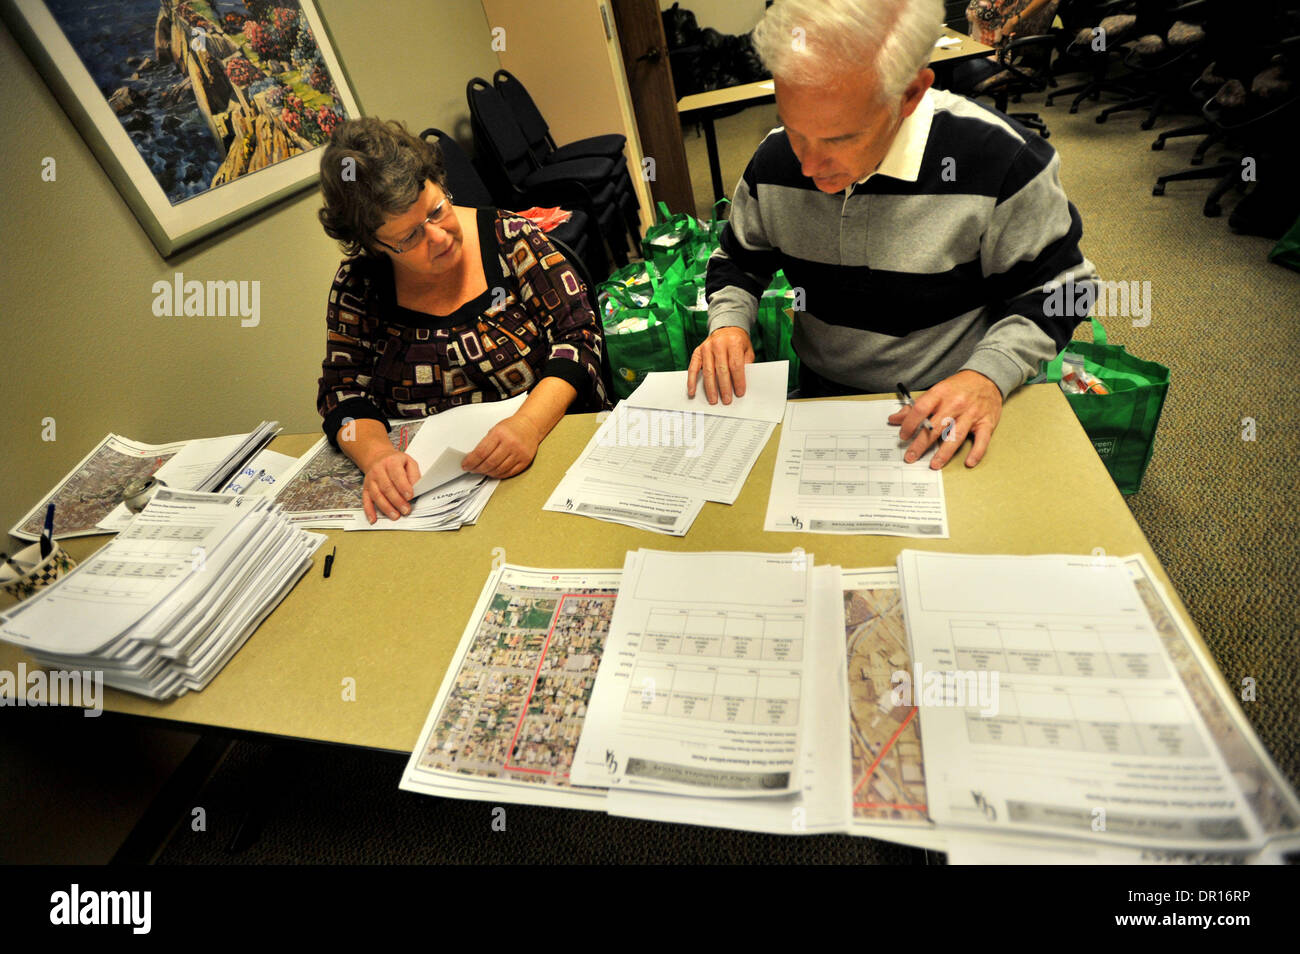 Jan 22, 2009 - San Bernardino, California, USA - GAIL LAWING of Menifee, Calif. and PHIL BRANSTETTER of Riverside, Calif. organize packets of directions and maps of search blocks as teams of volunteers fan-out across San Bernardino County, Calif. as The San Bernardino County Office of Homeless Services and Homeless Partnership conduct a 'Point-in-Time' bi-annual census count of the - Stock Image